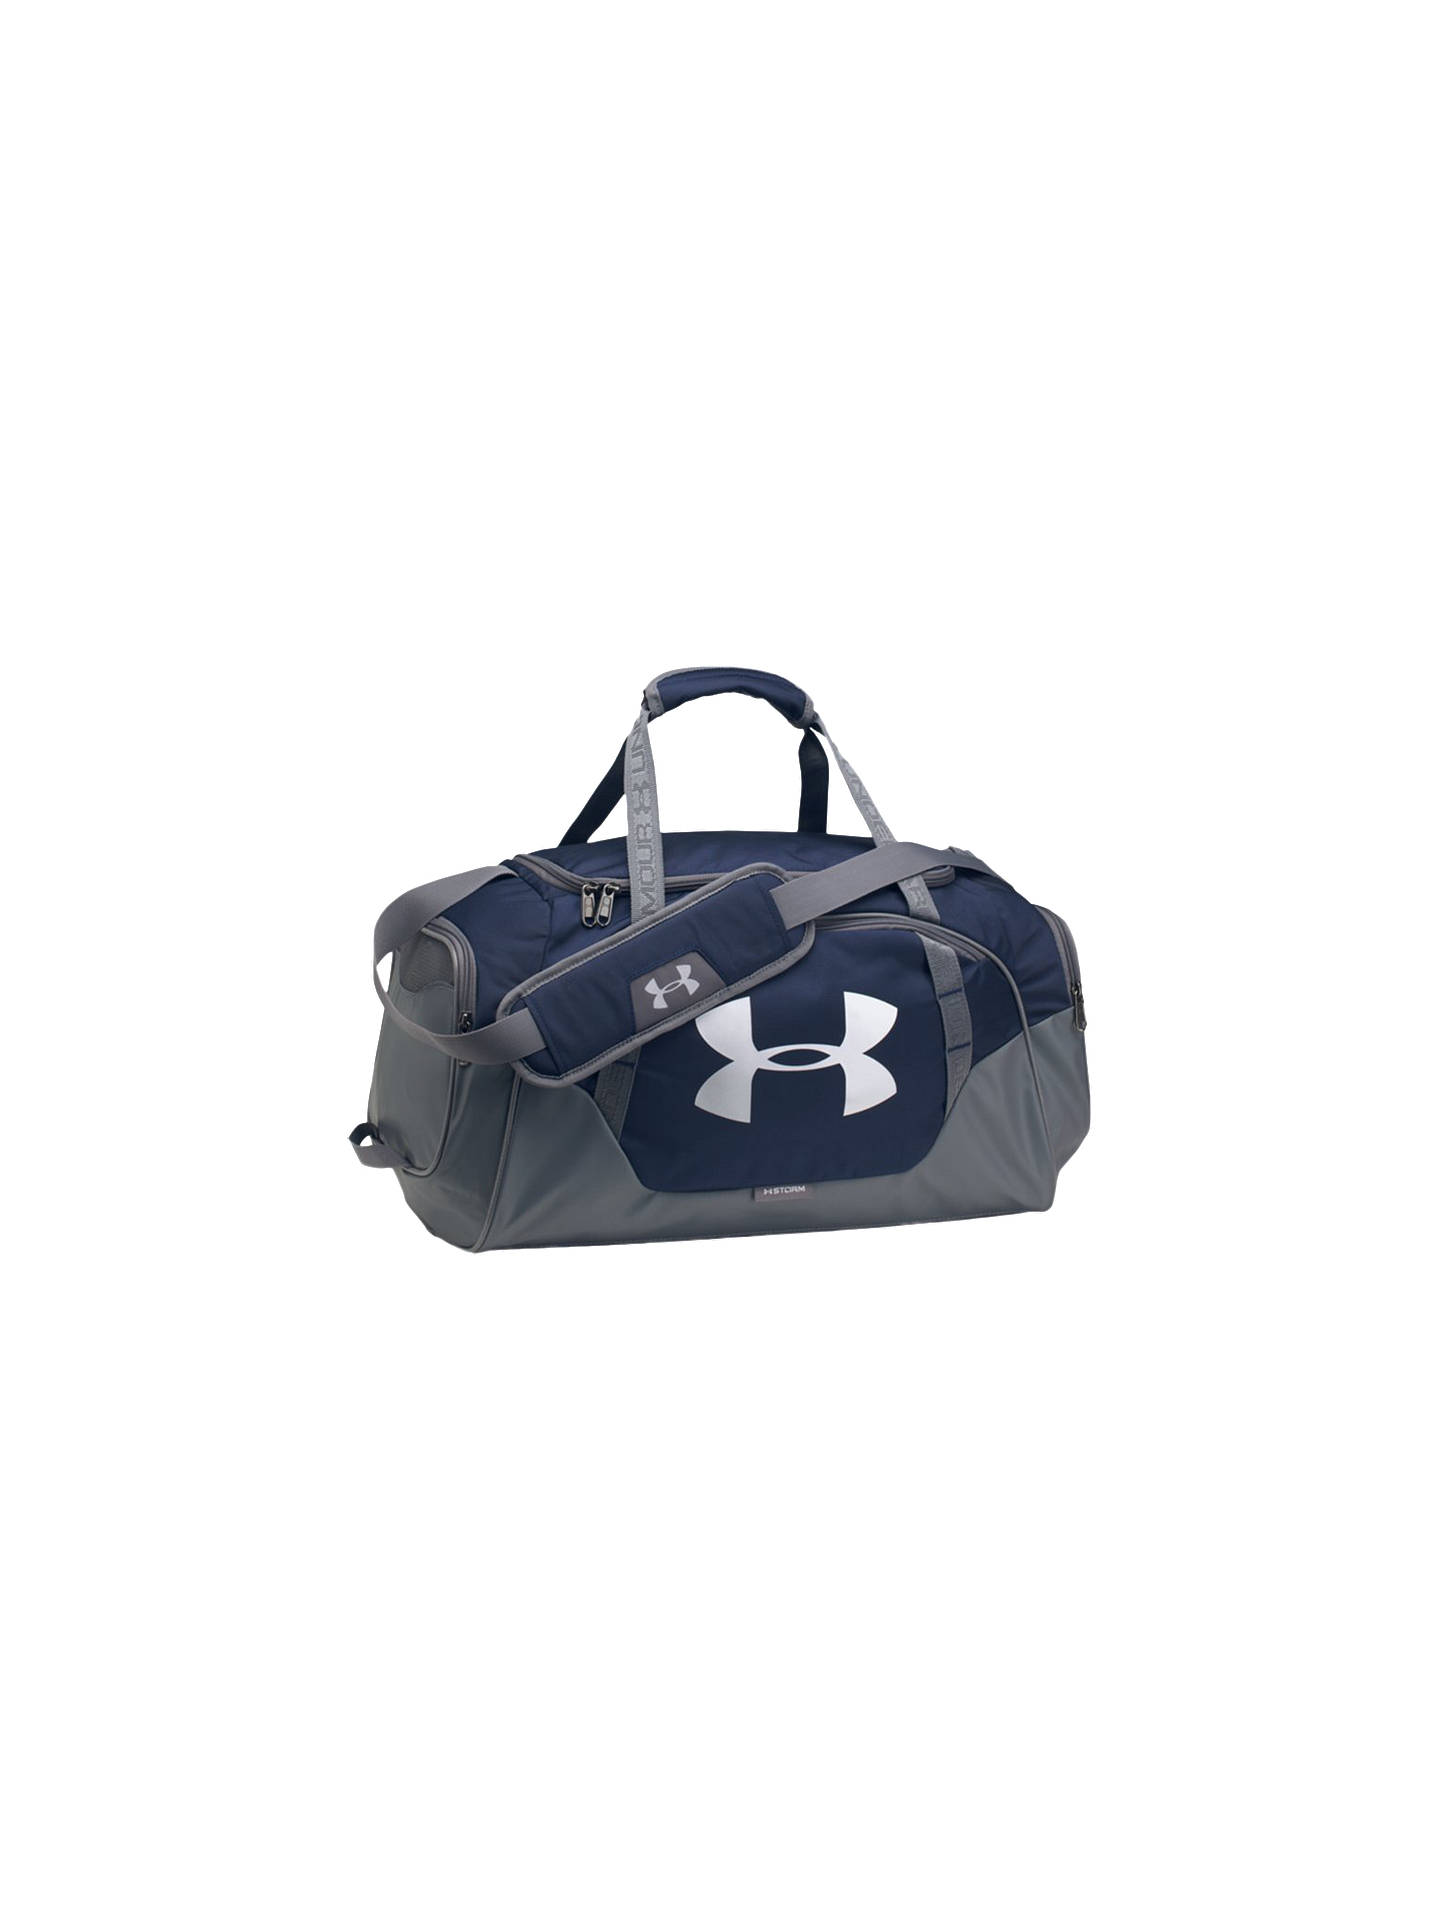 f0a3ccddf5 Buy Under Armour Storm Undeniable 3.0 Small Duffel Bag